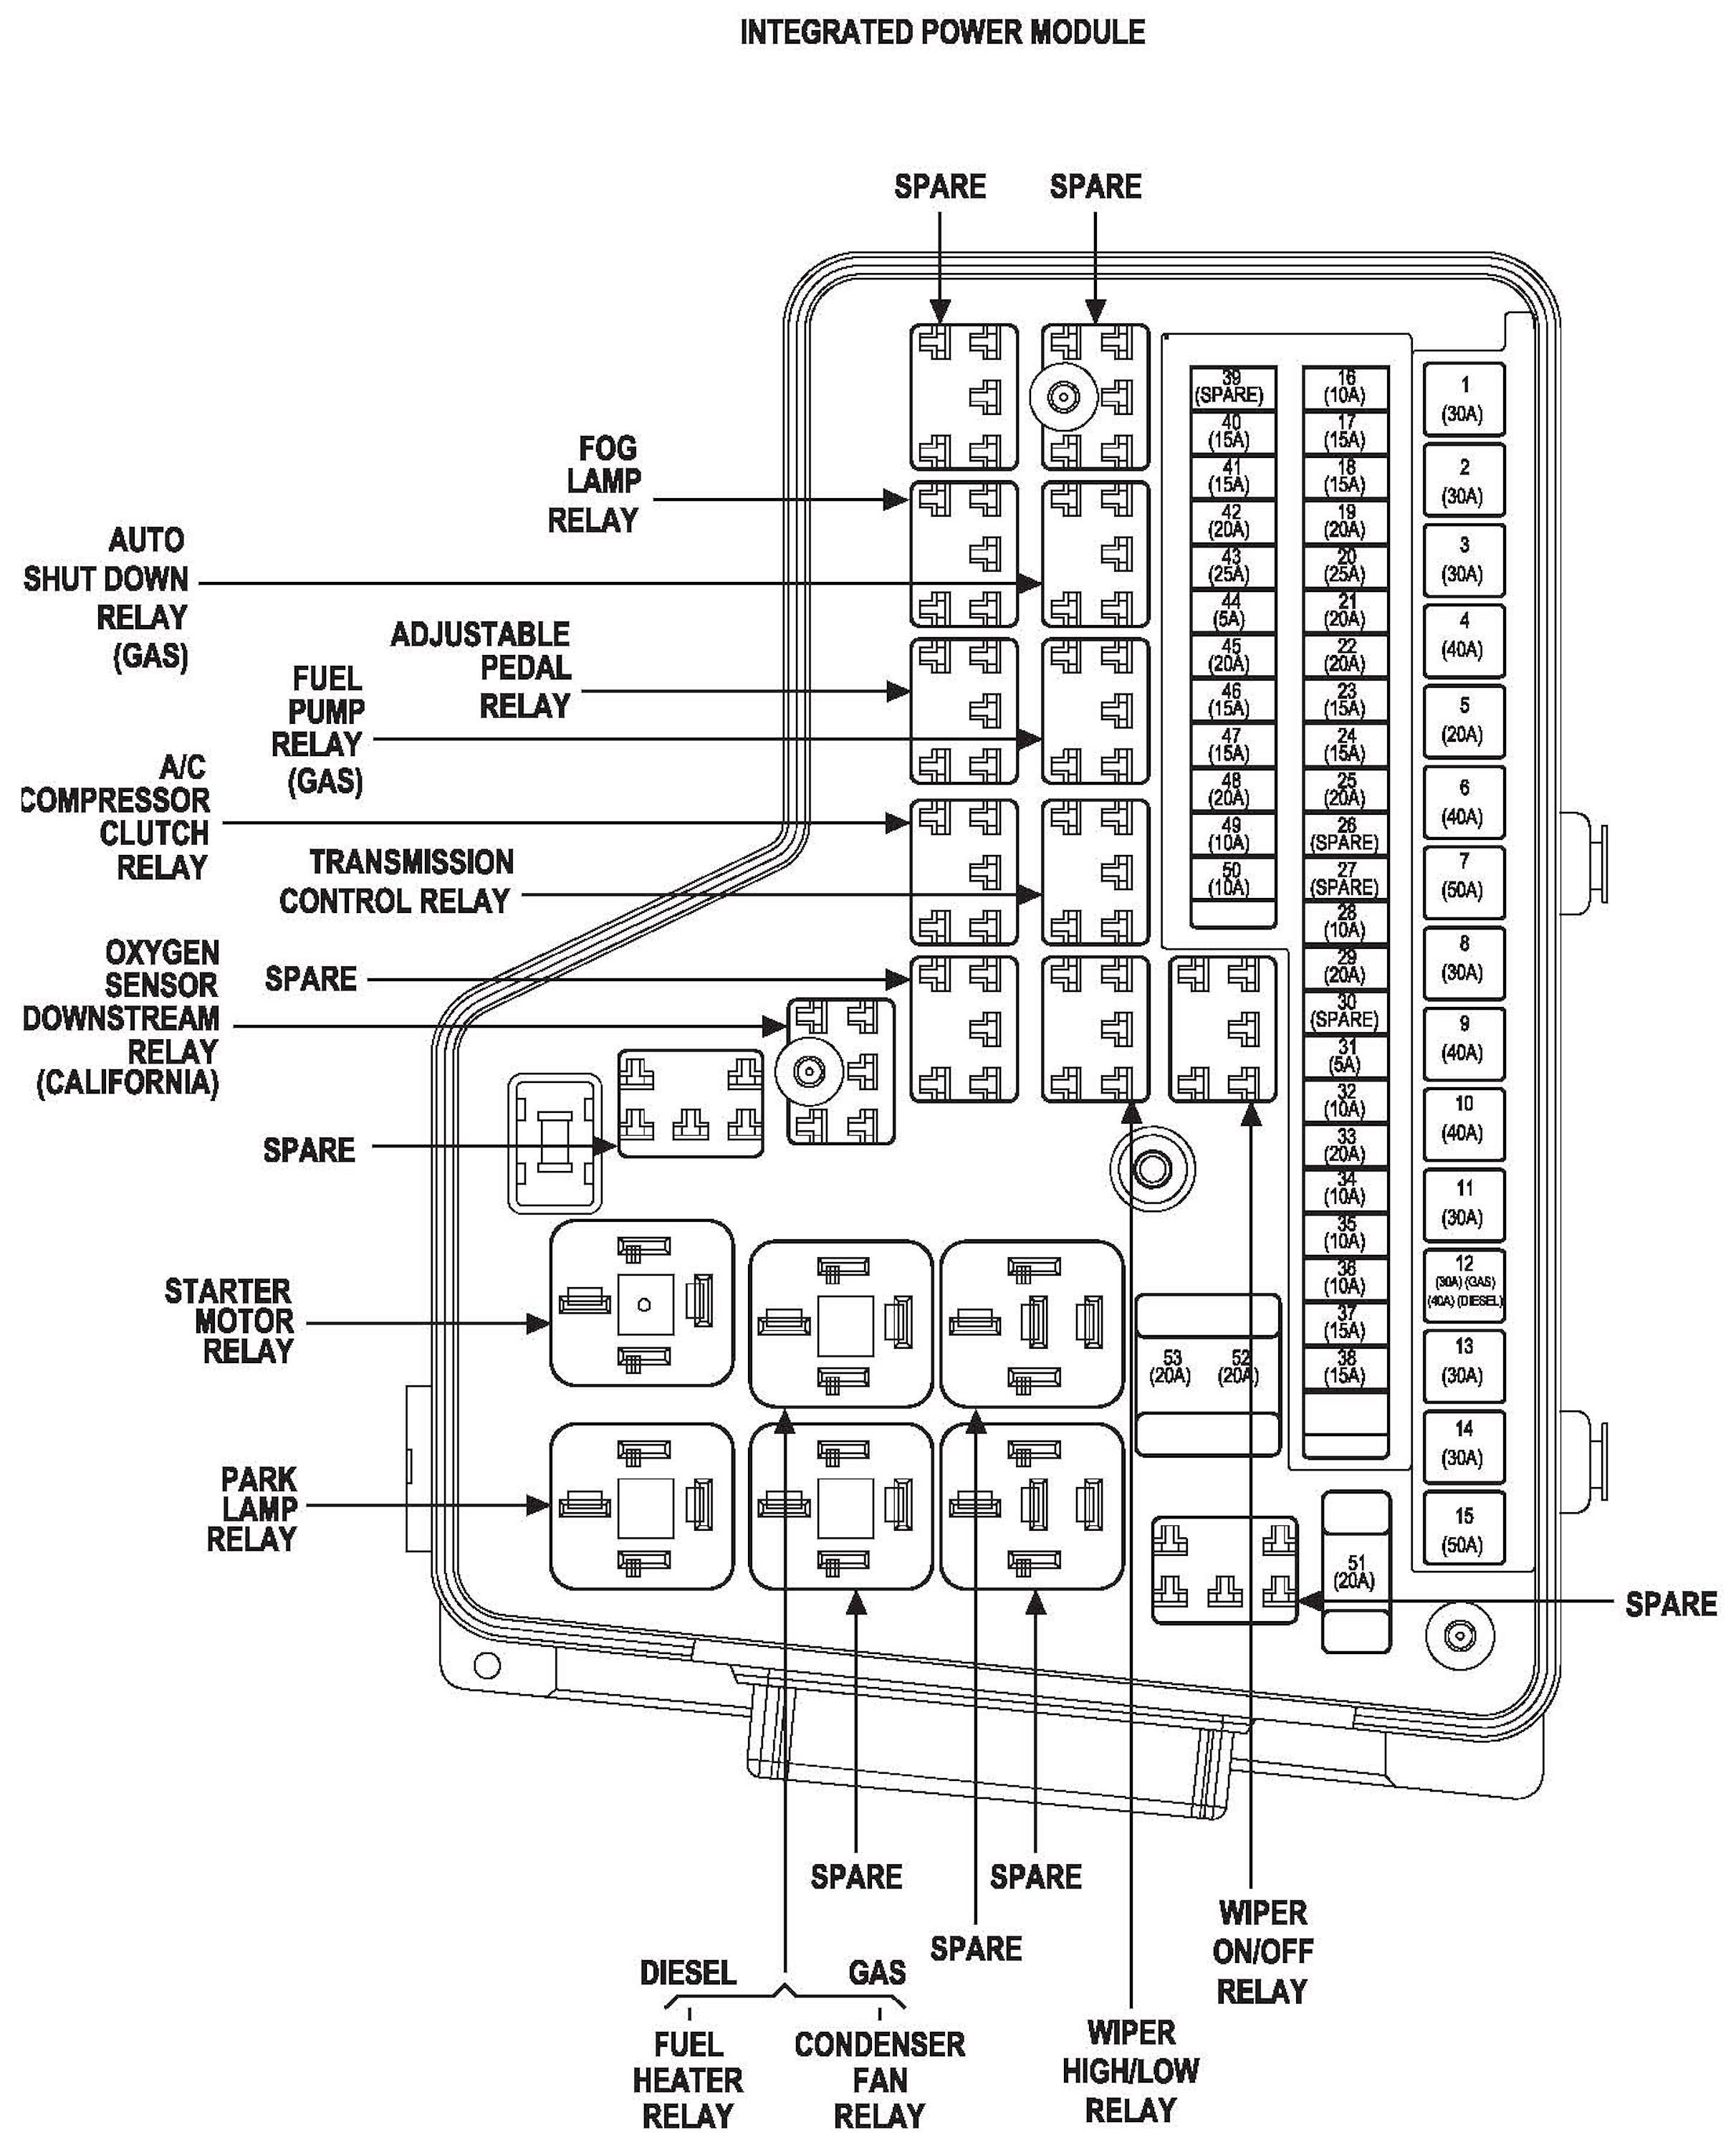 2004 Dodge Ram Fuse Box Diagram - Data Wiring Diagram Schematic - 2004 Dodge Durango Trailer Wiring Diagram